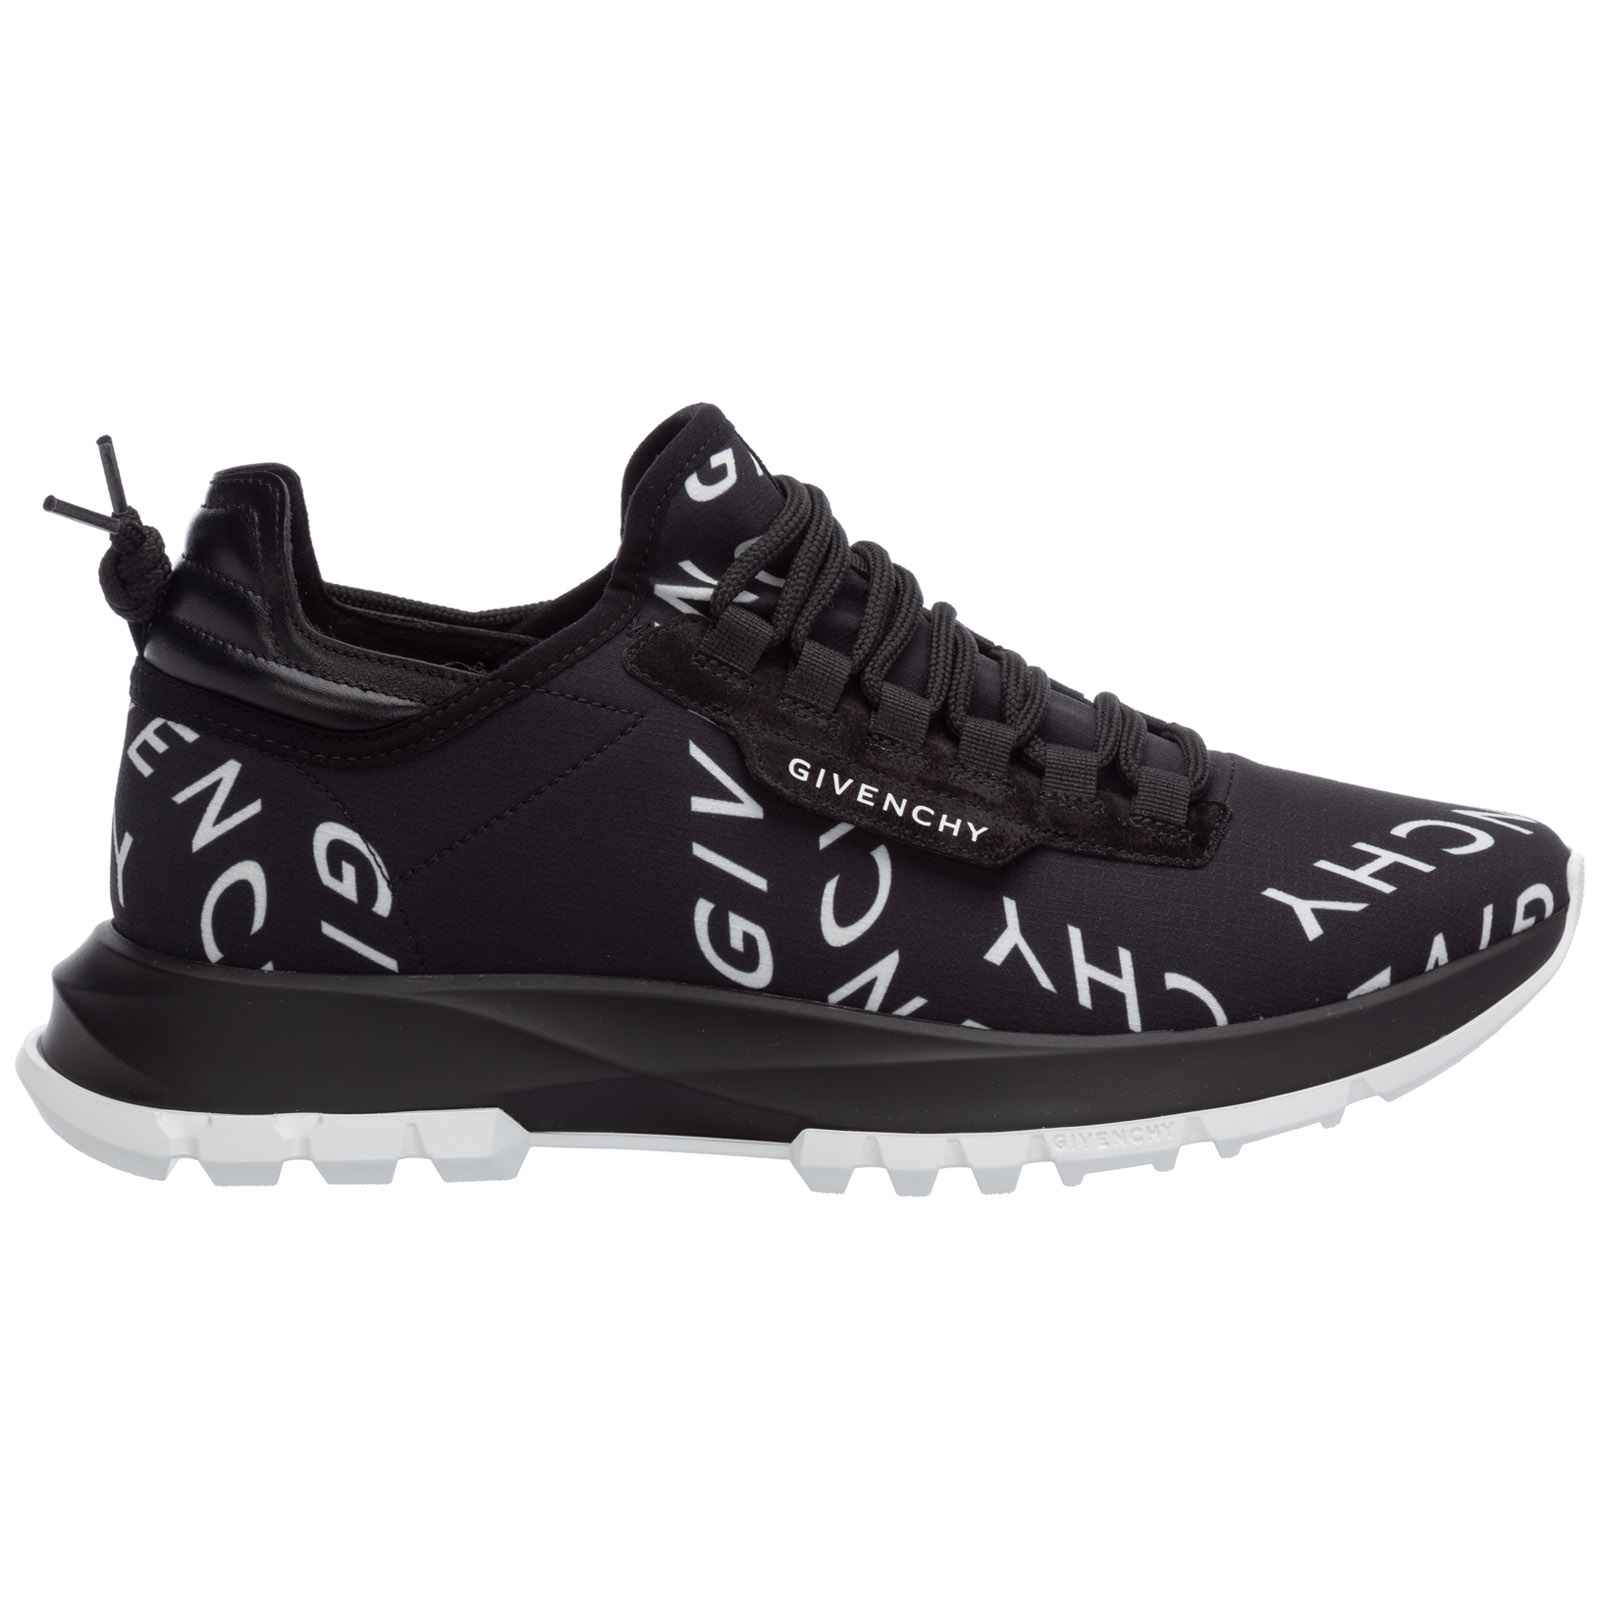 Sneakers Givenchy spectre BH003AH0PT